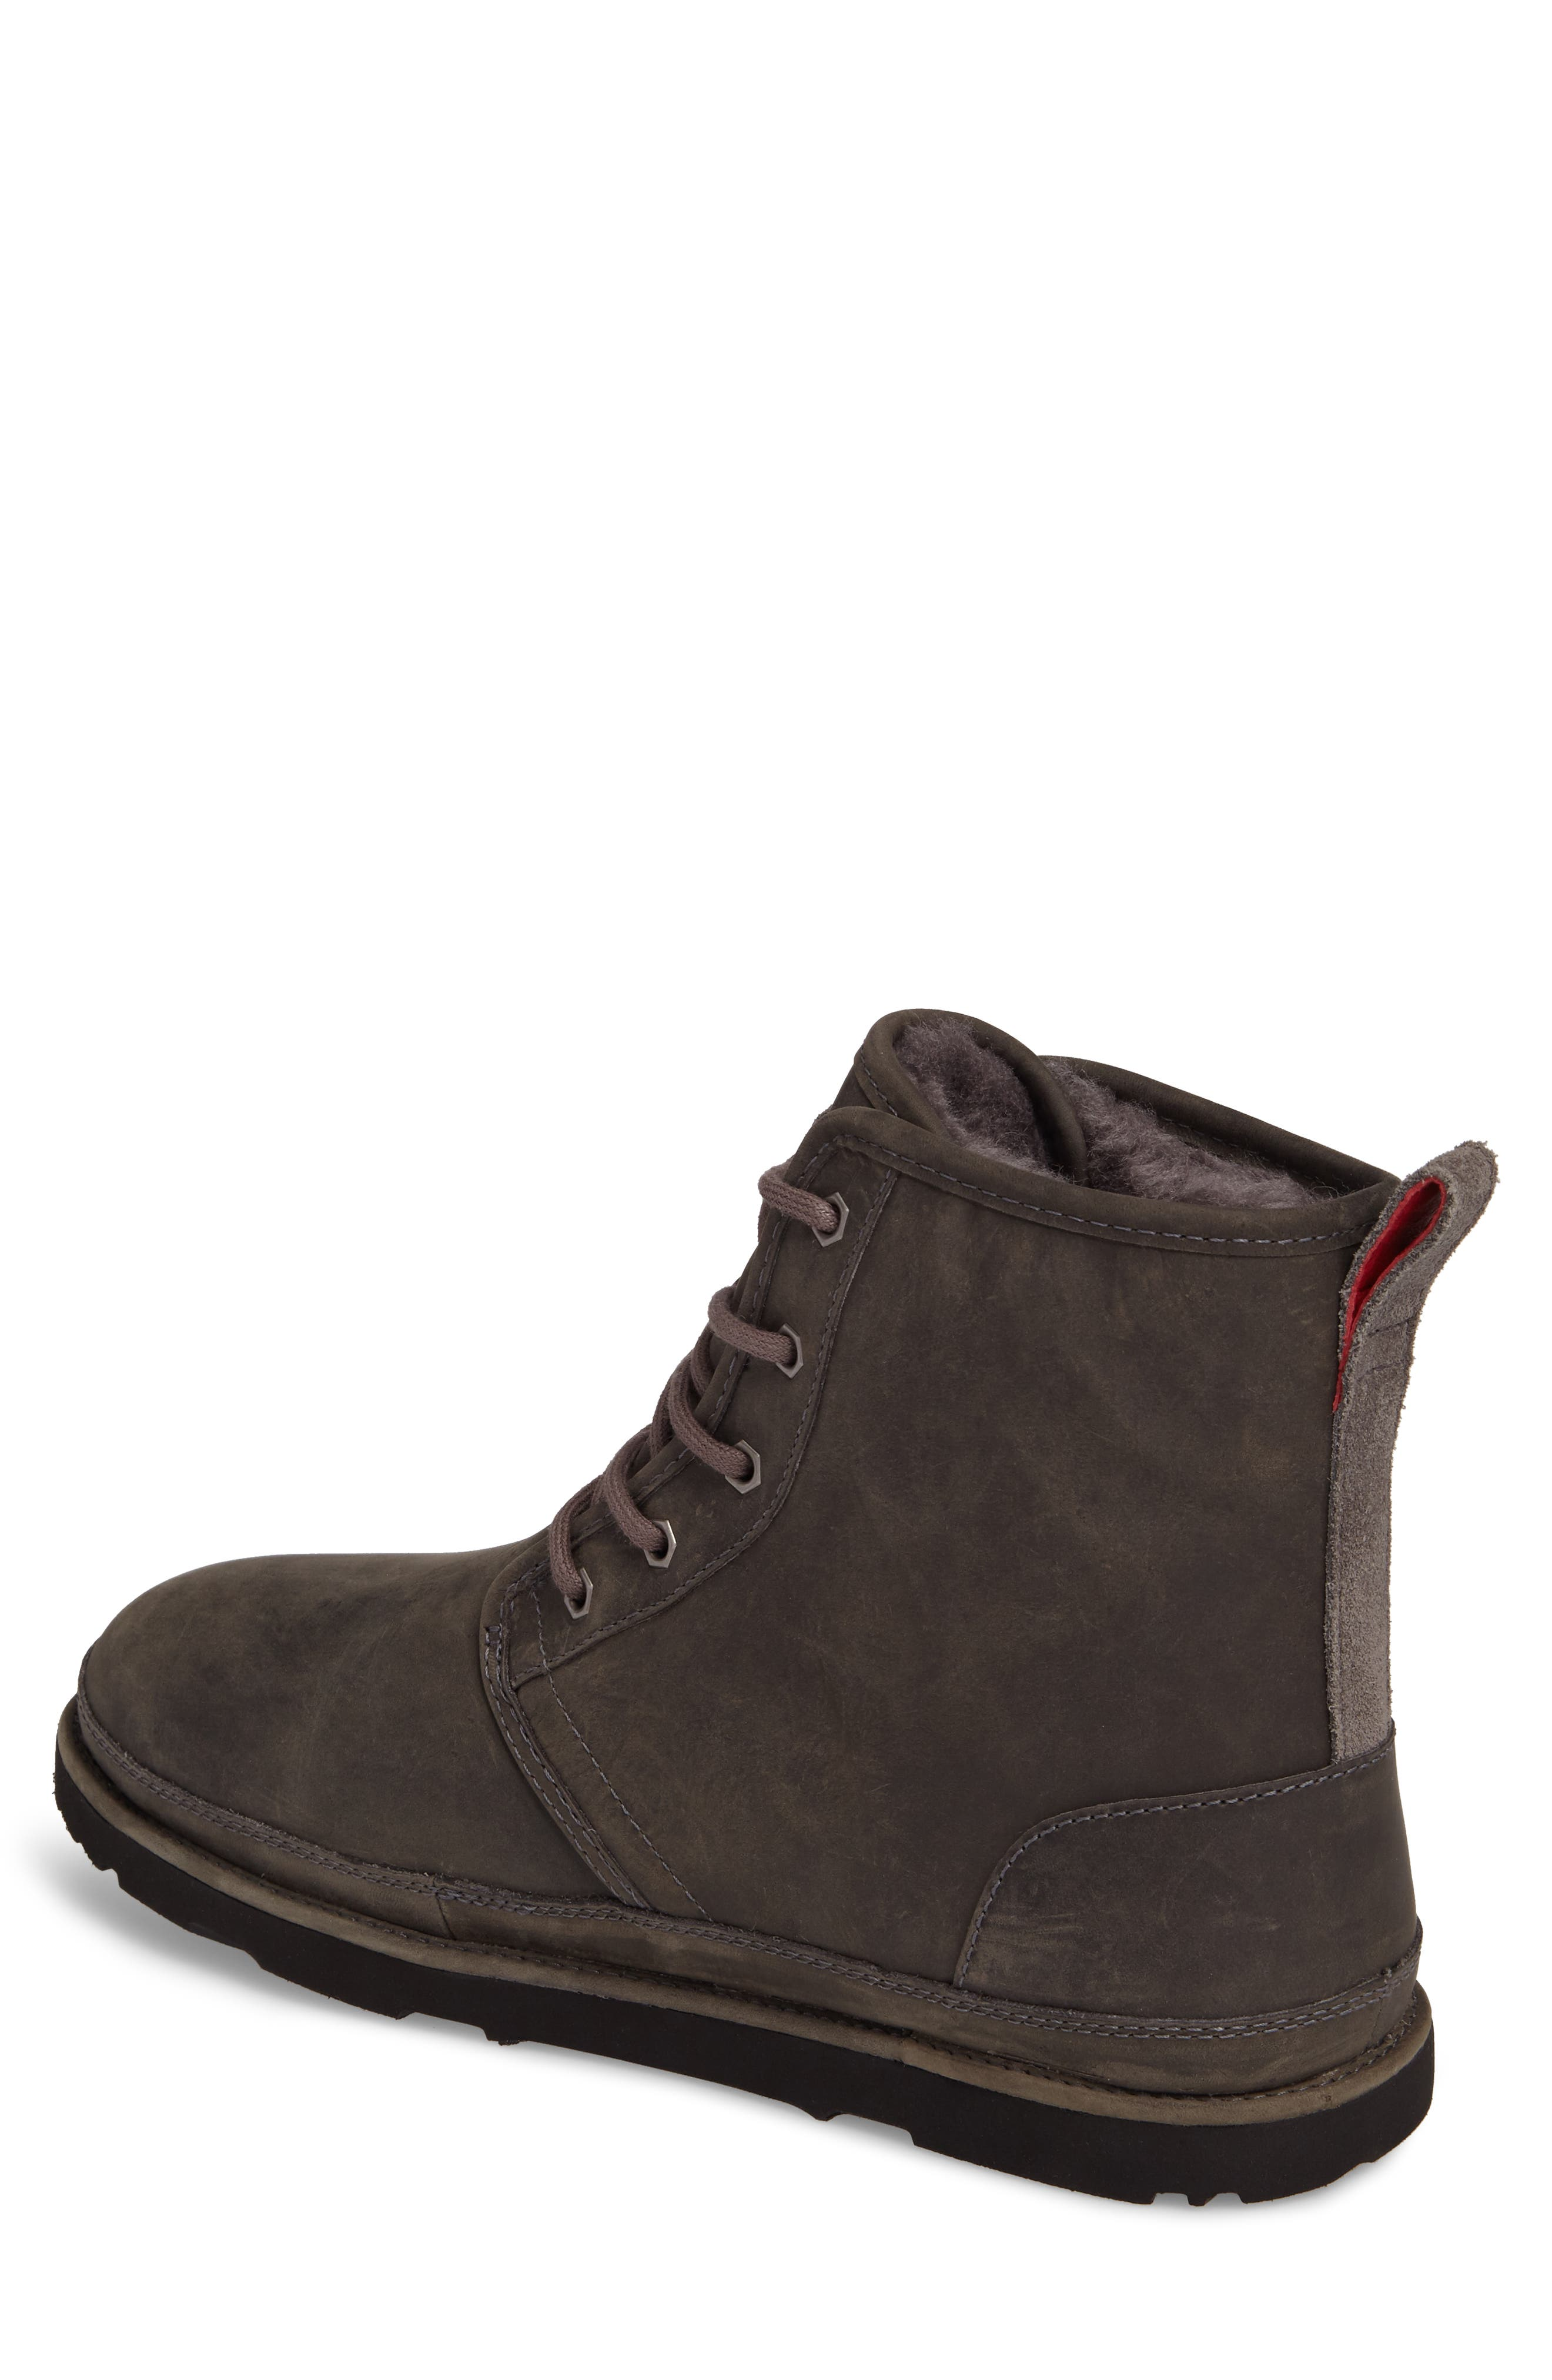 Harkley Plain Toe Boot,                             Alternate thumbnail 2, color,                             Charcoal